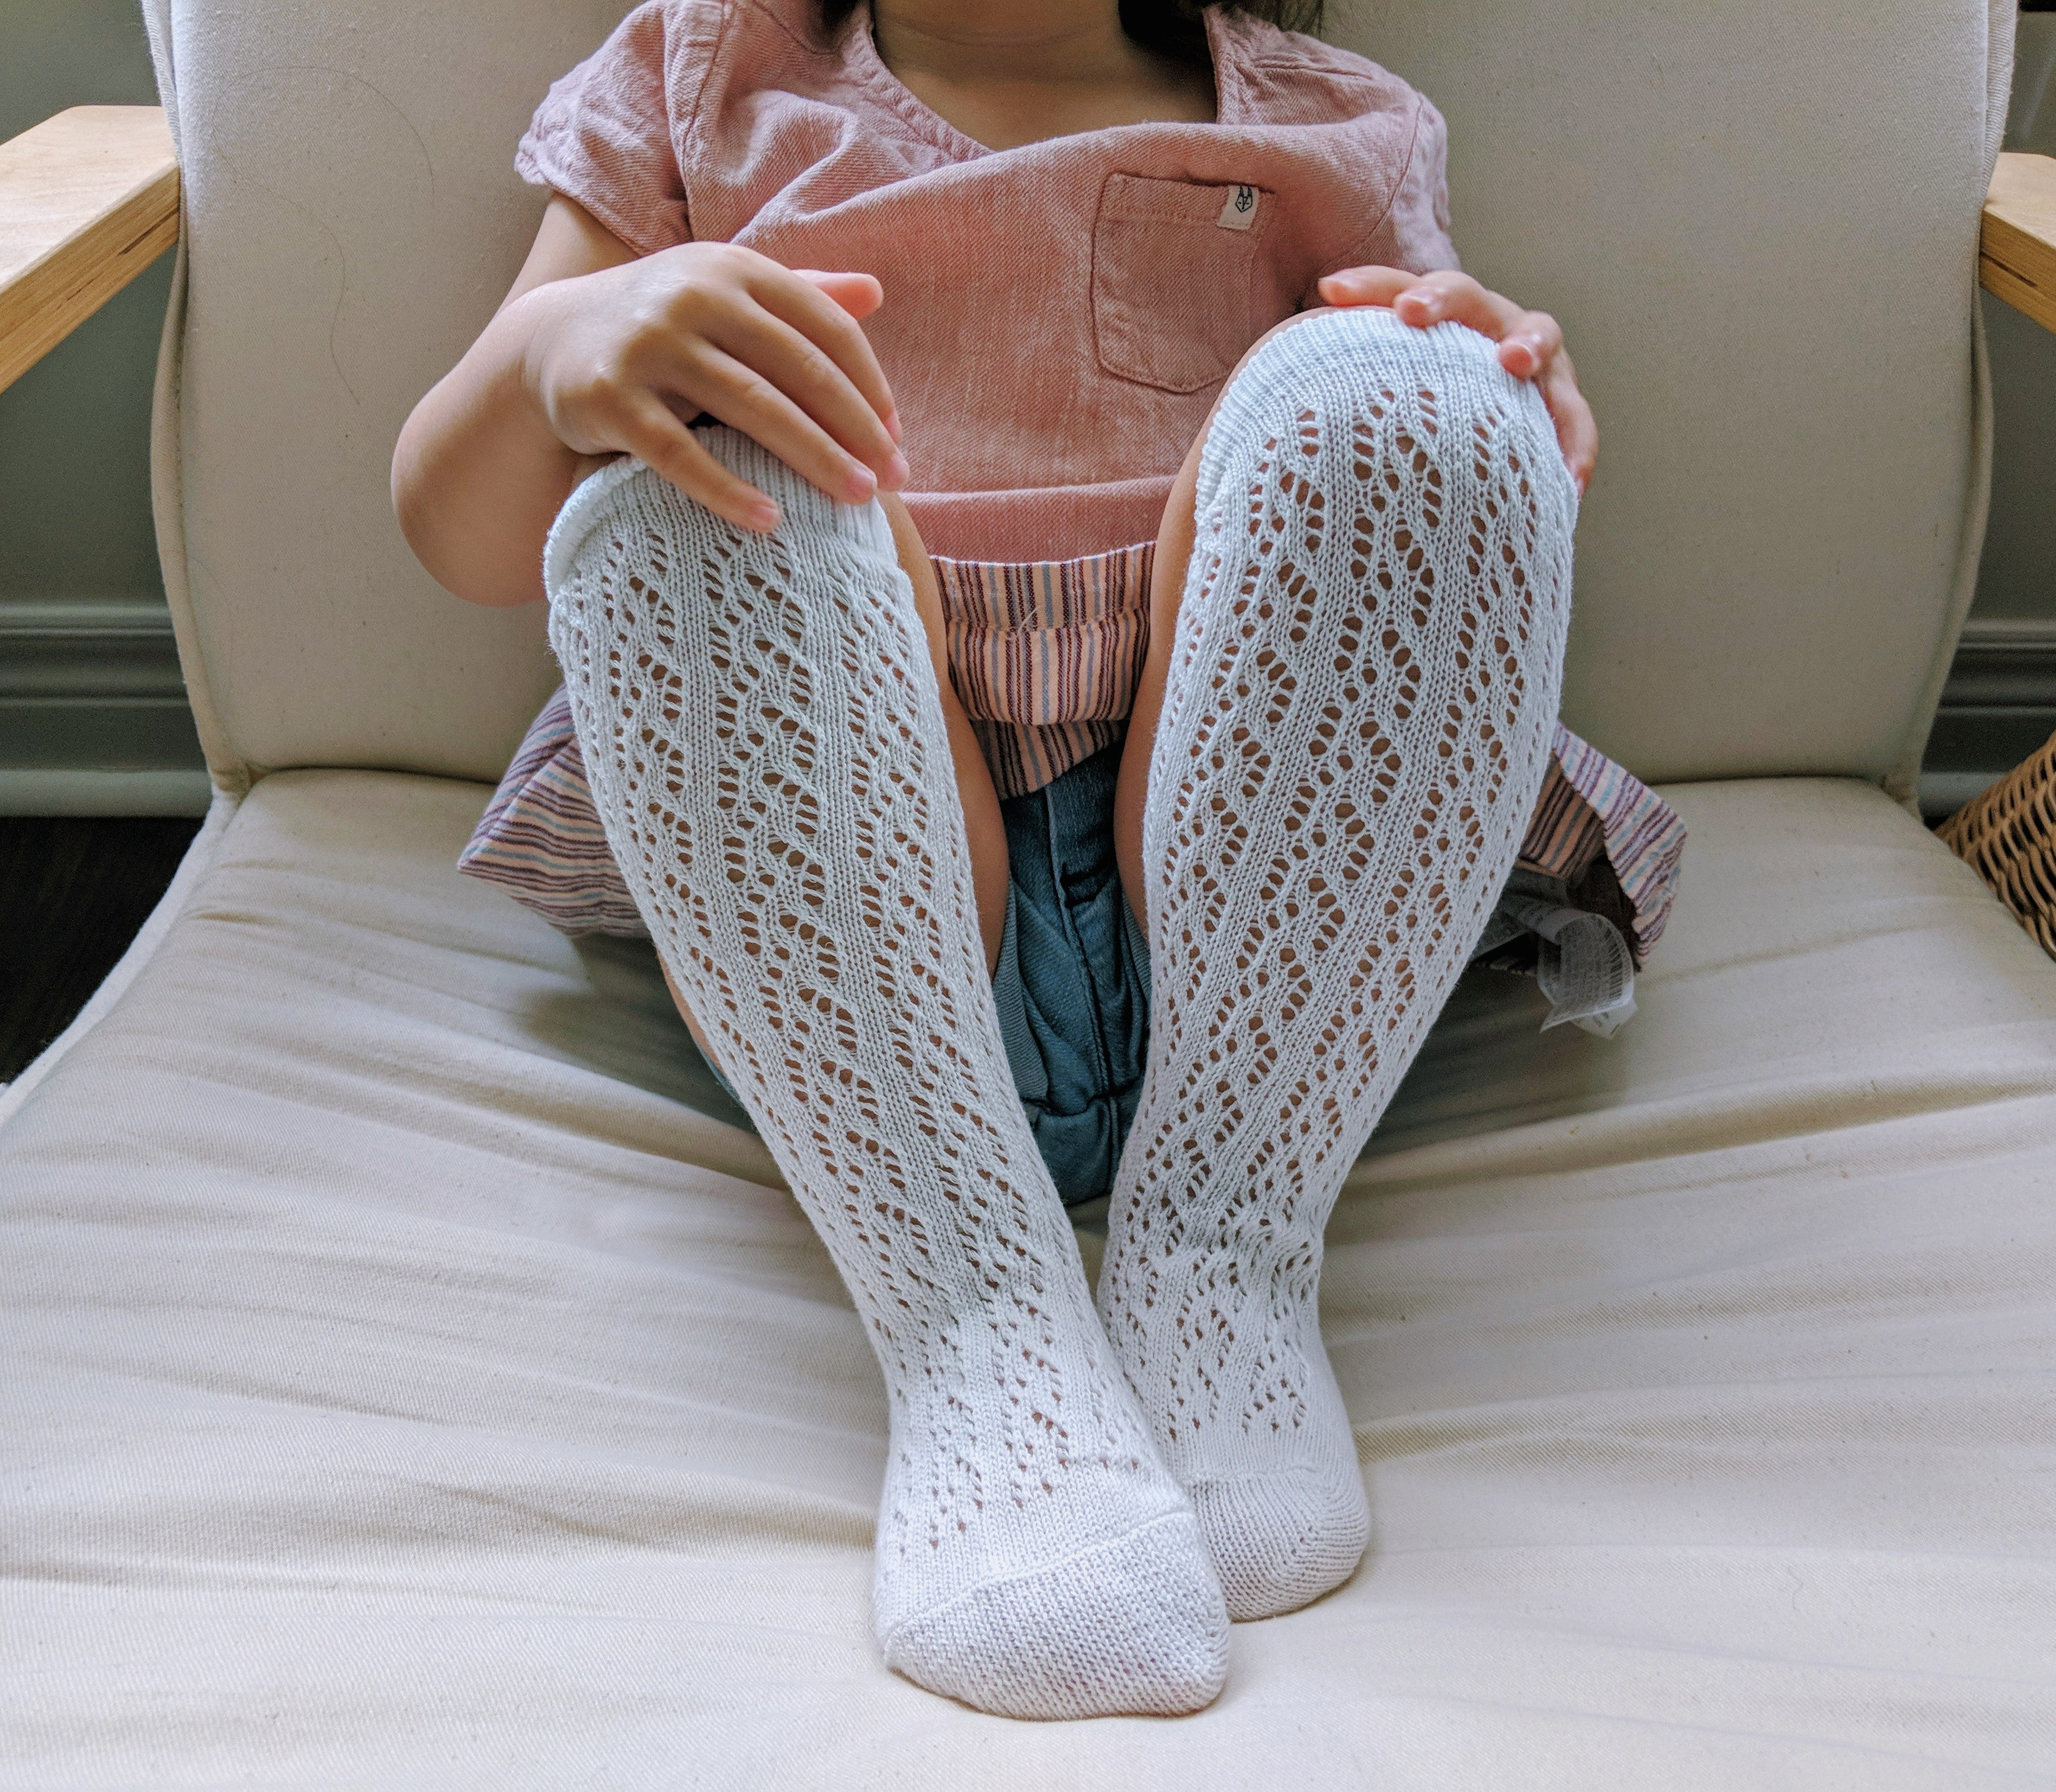 Crochet Lace Knee Socks - Loops For Littles, handmade knits for infants and toddlers